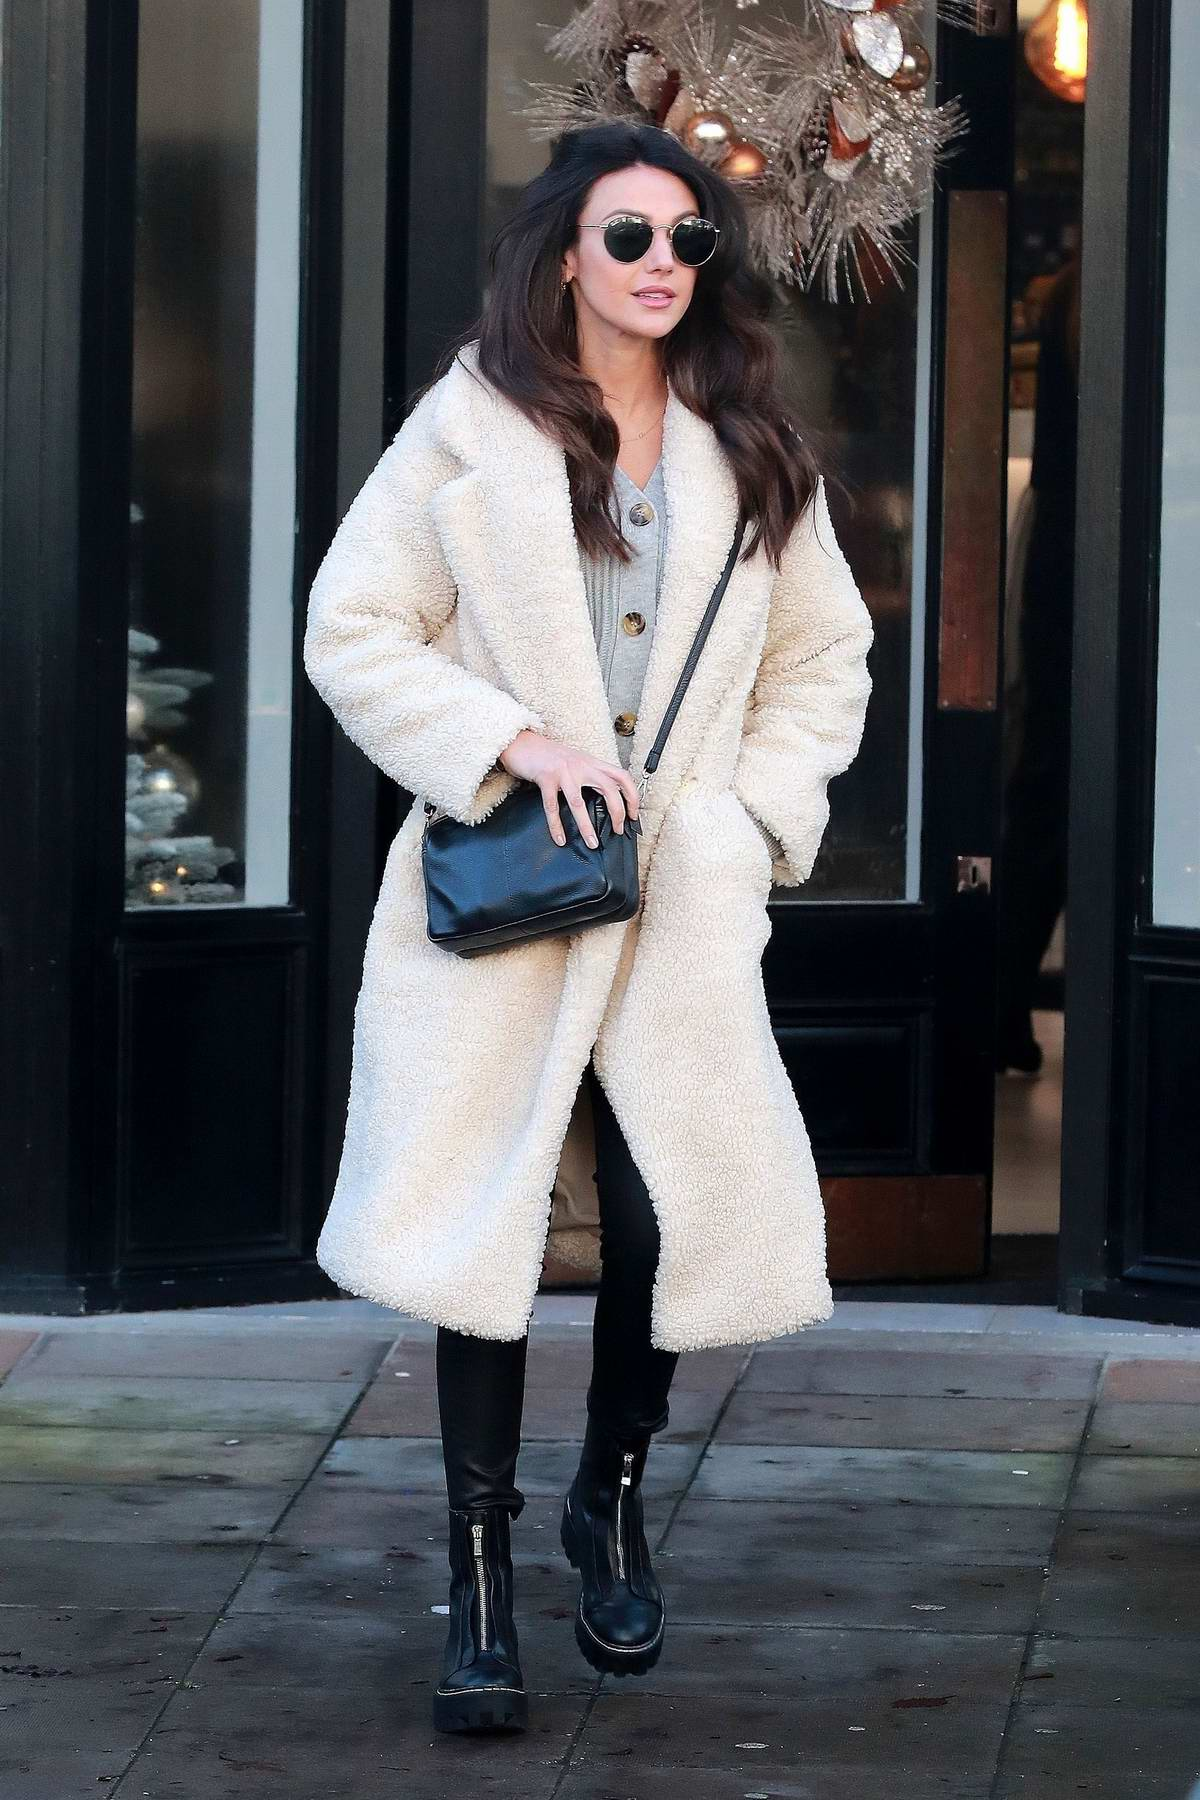 Michelle Keegan is all smiles as she leaves Terrance Paul Salon in Hale, Cheshire, UK